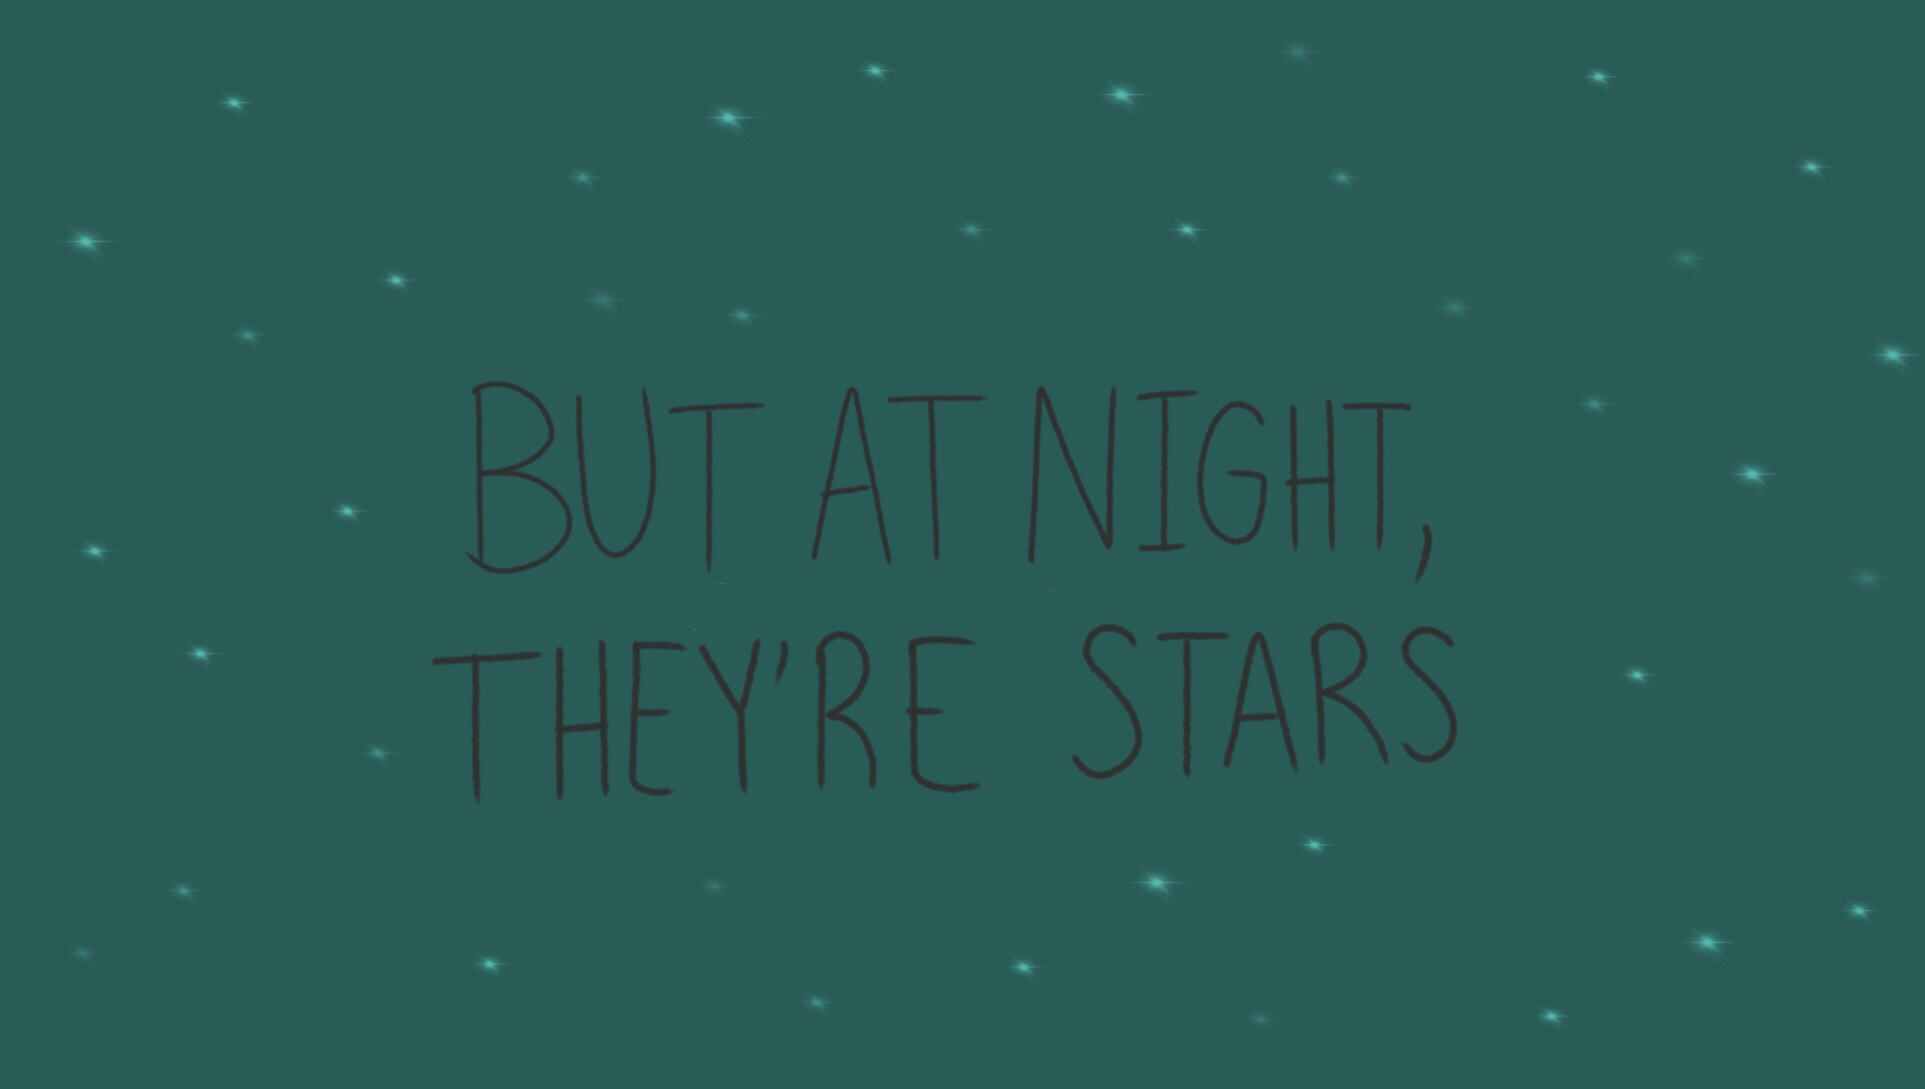 "Stars against dark green background with the caption ""but at night, they're stars""."